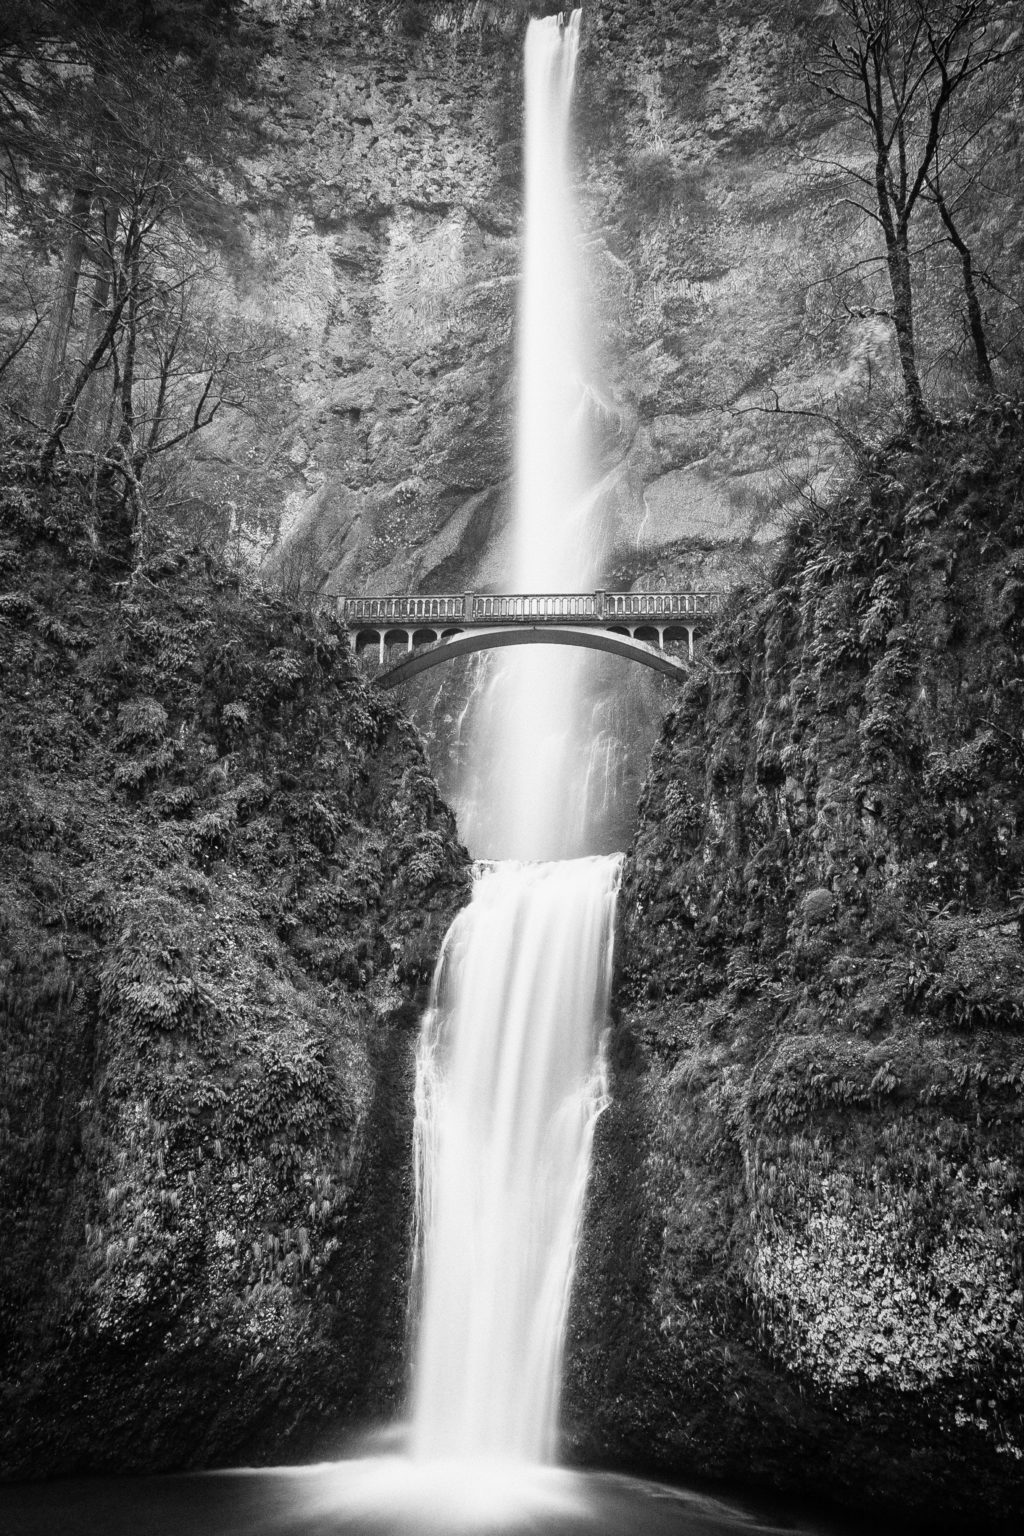 River with waterfall in black and white